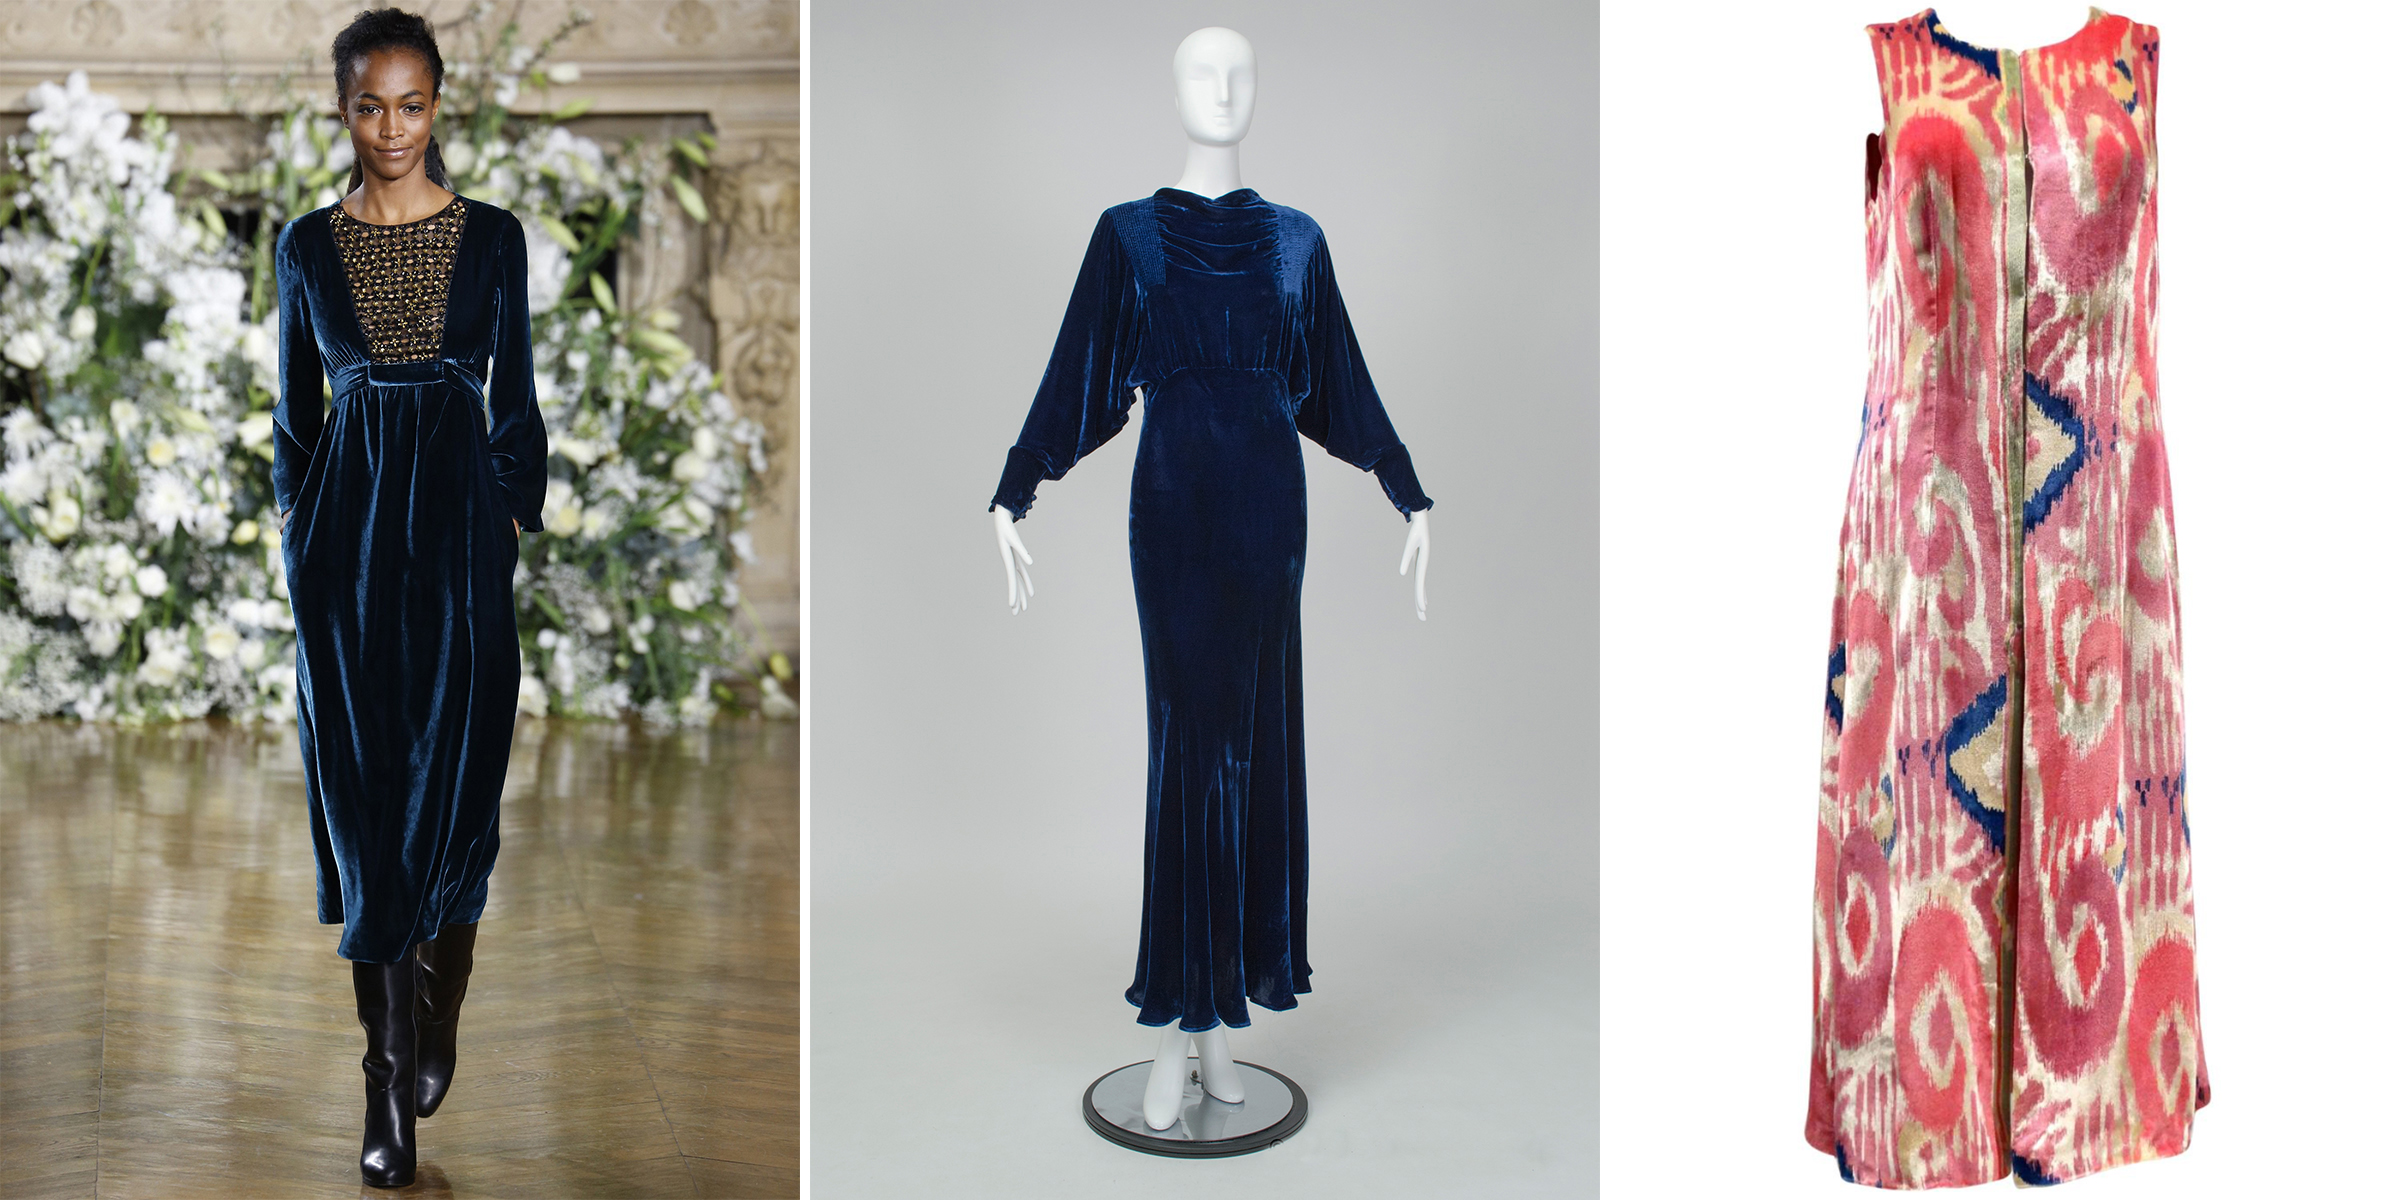 A Vanessa Seward gown (A/W 2016) compared with a similar gown at Black Cat Vintage.